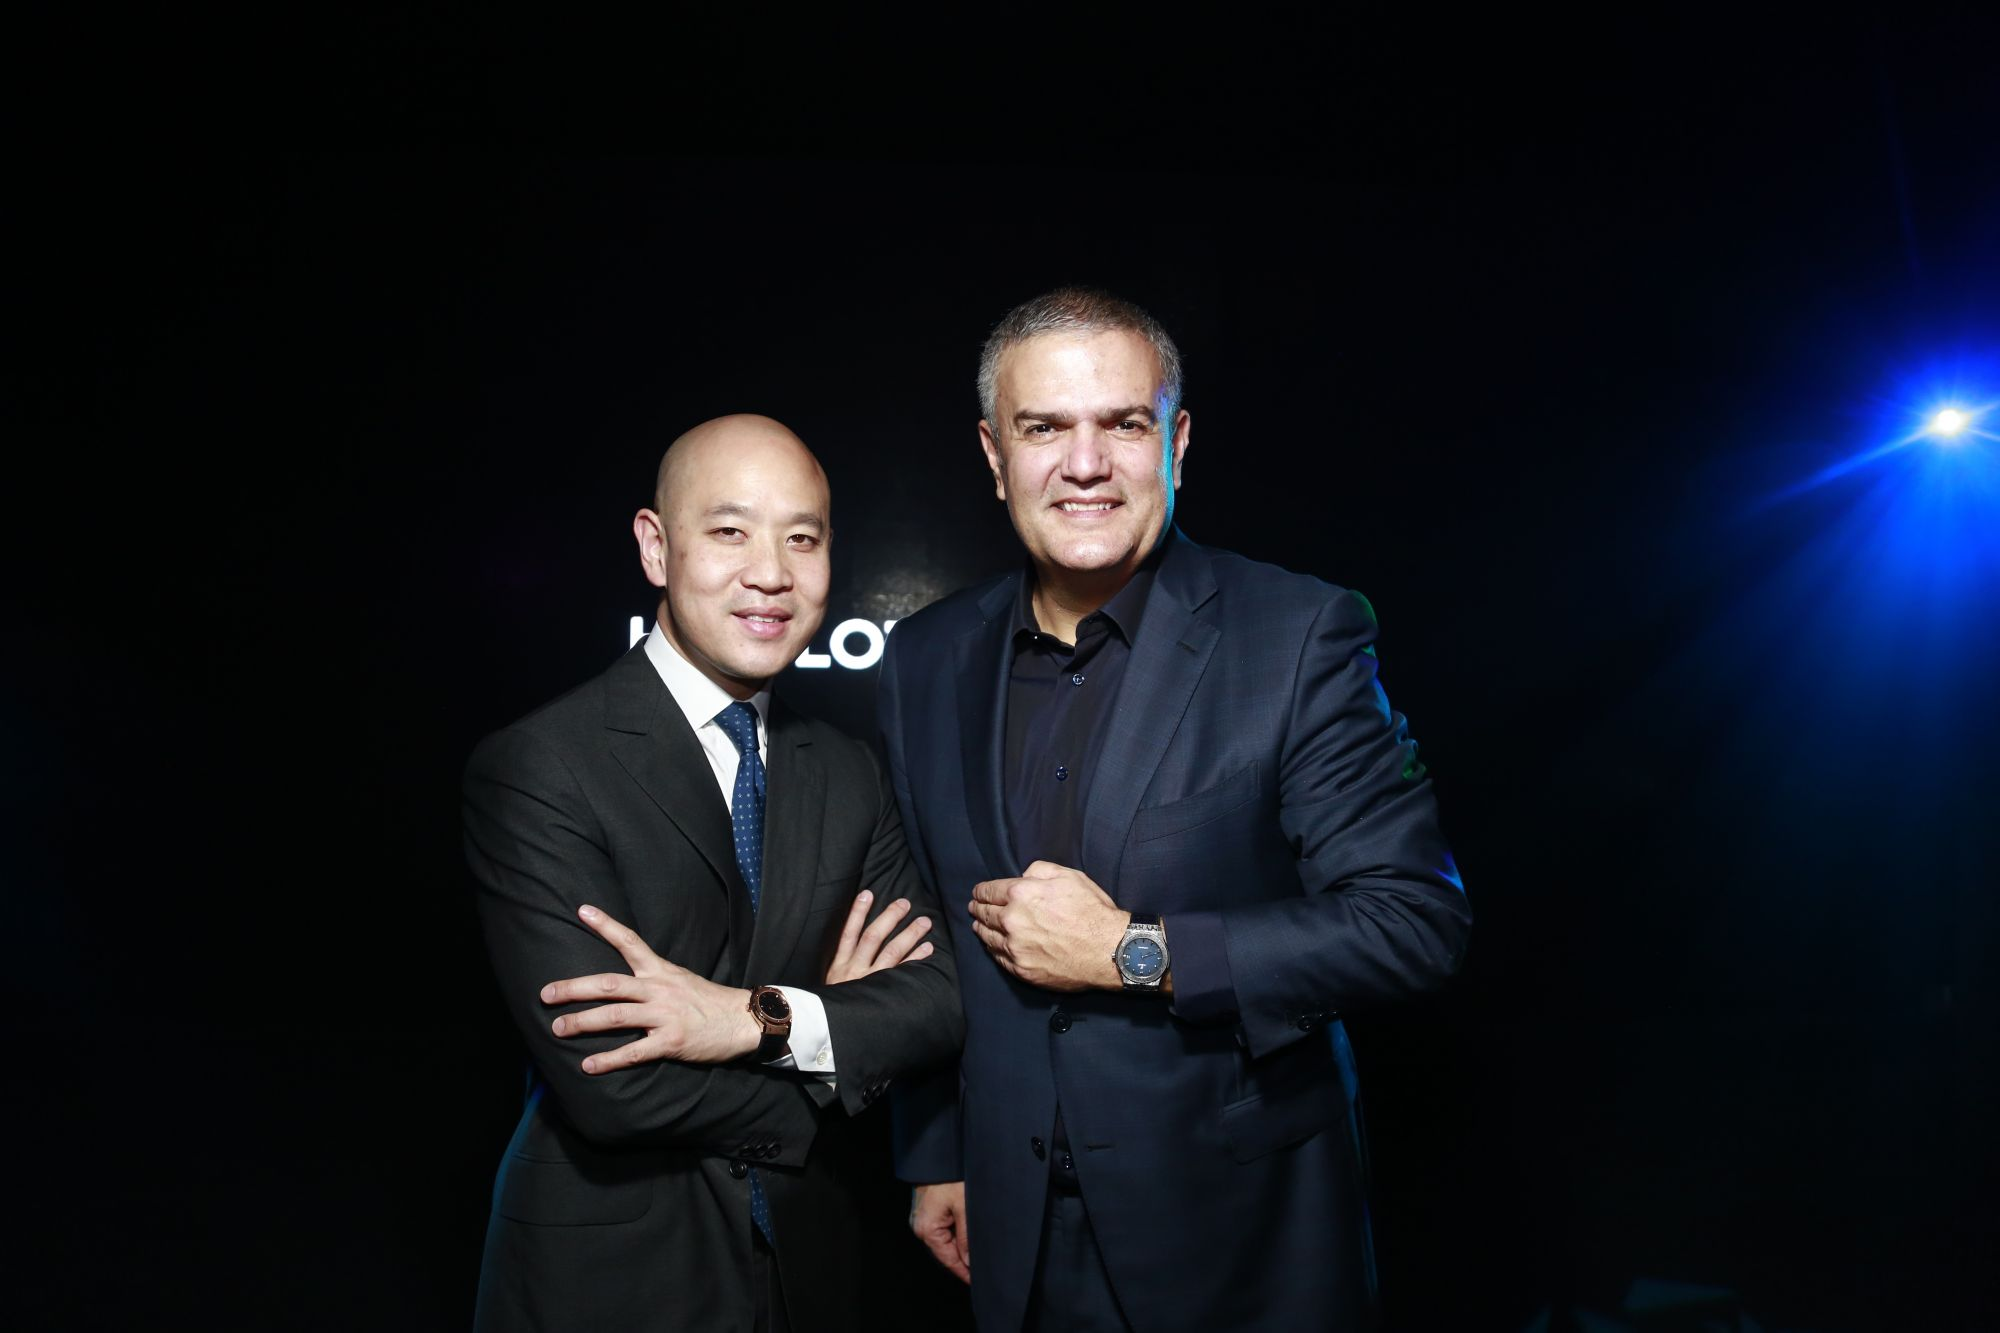 Michael Tay, Group Managing Director of The Hour Glass Limited, and Ricardo Guadalupe, CEO of Hublot